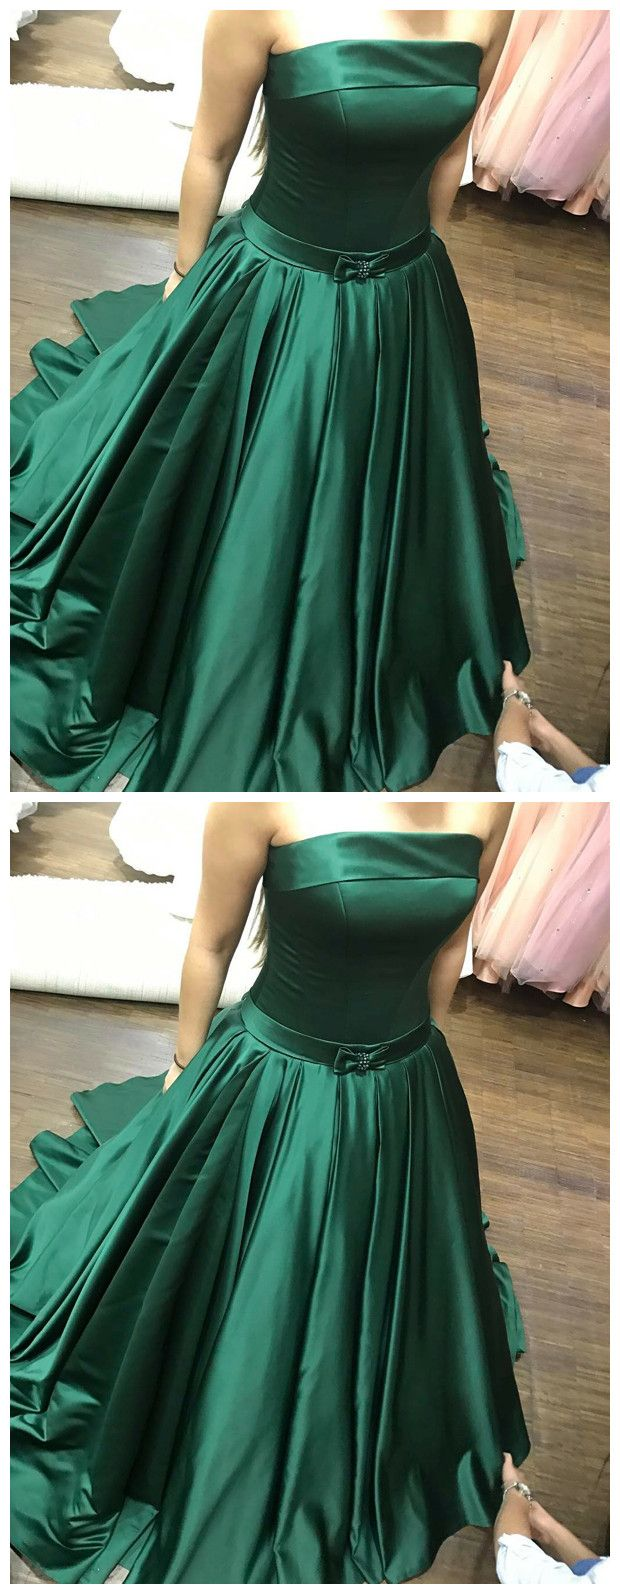 Strapless emerald green prom dressprom dresses formal prom dress